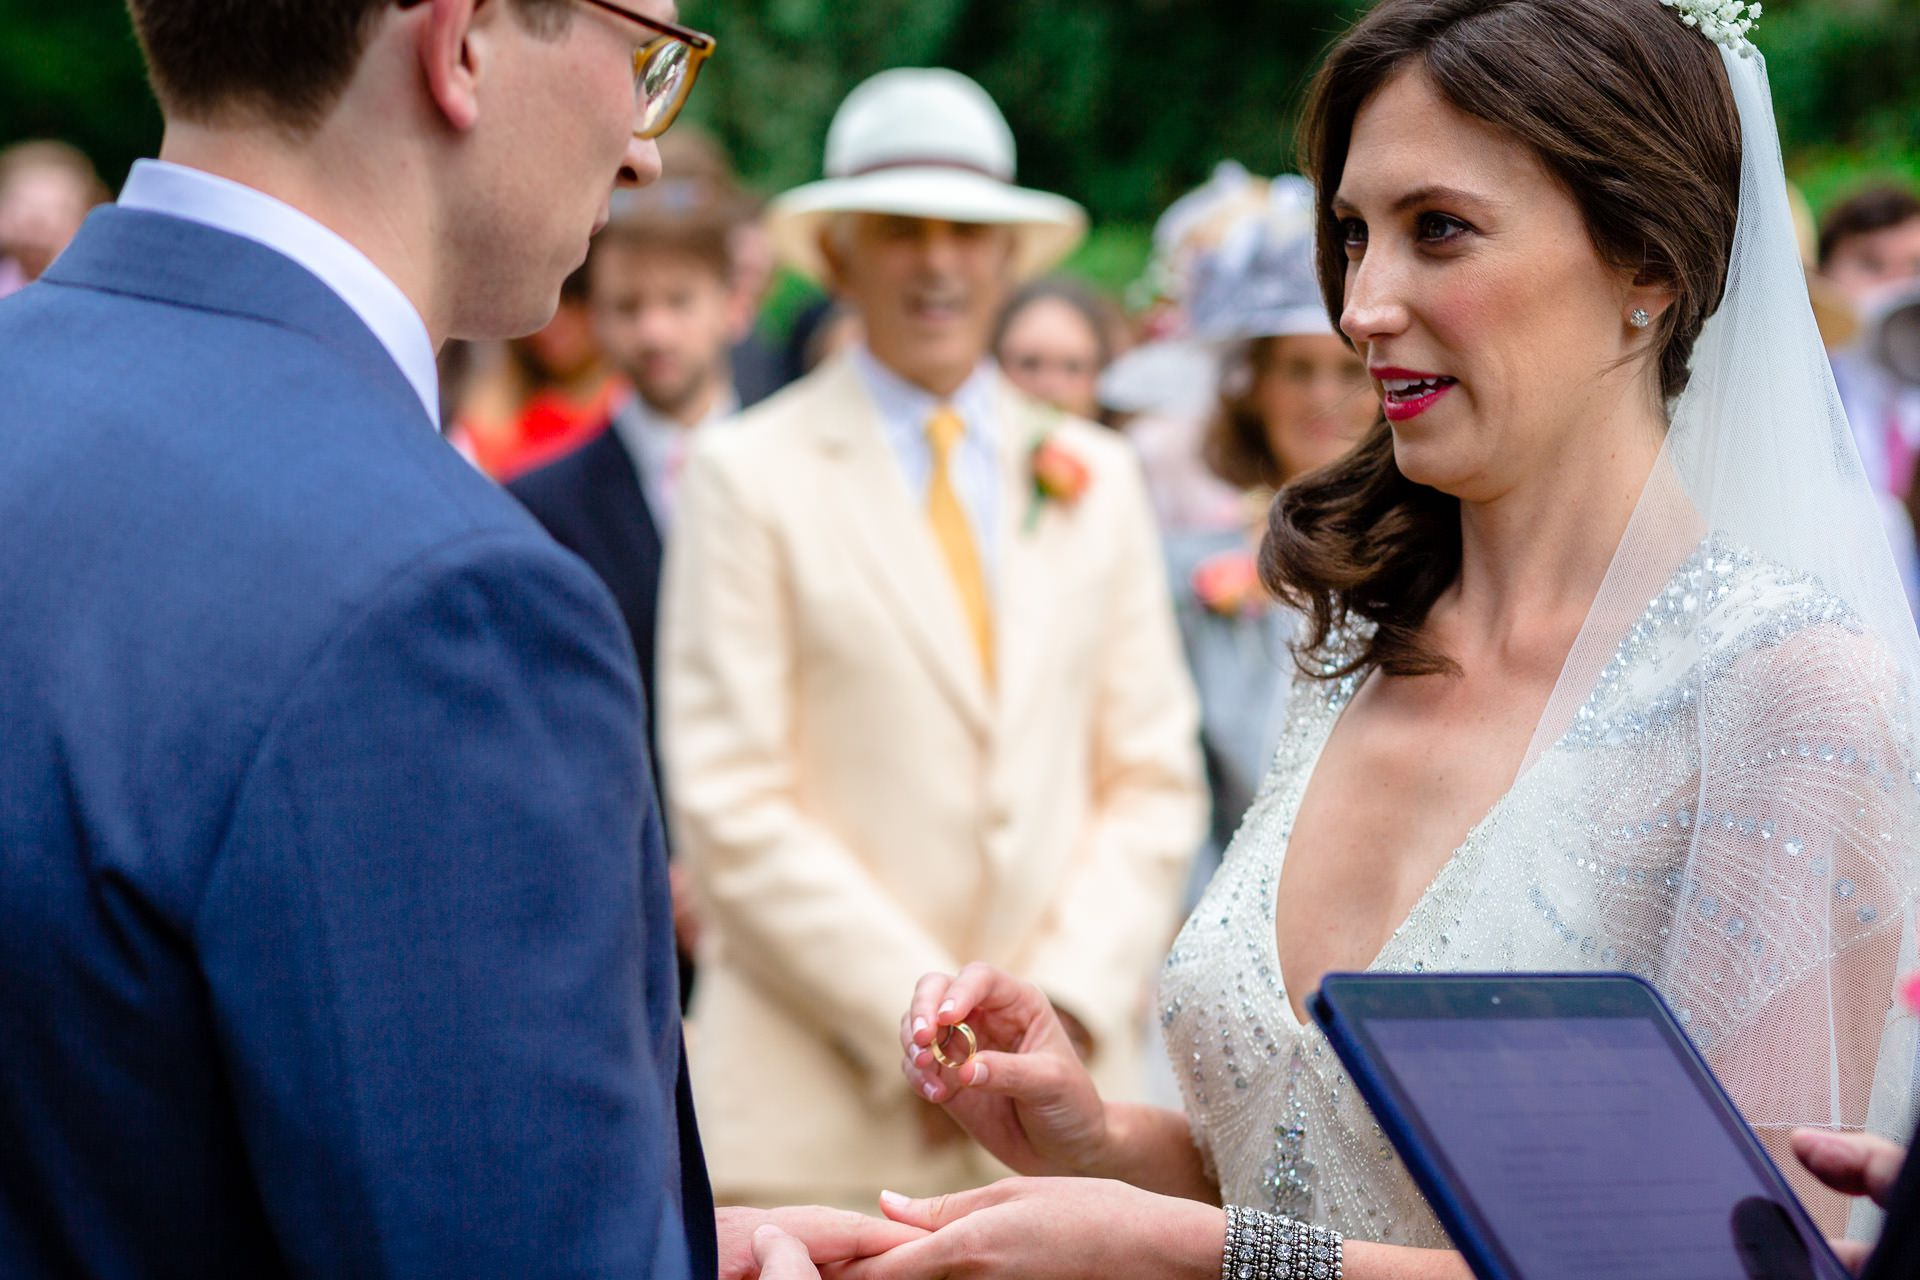 julia and rob wedding ceremony london